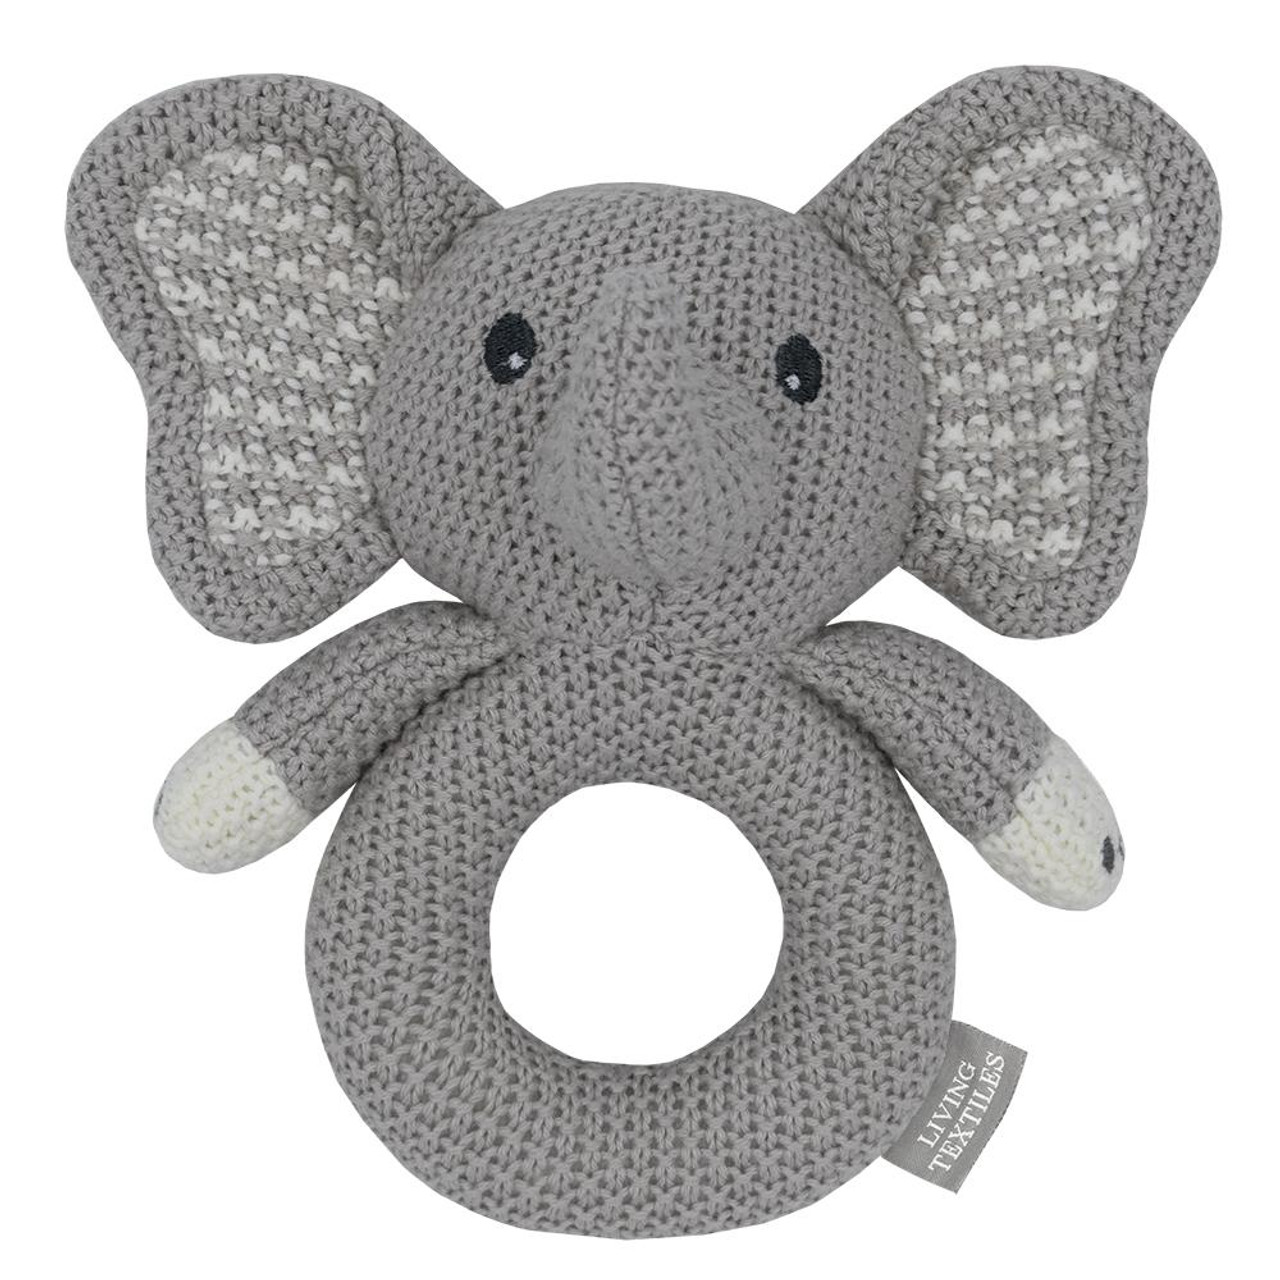 Living Textiles Knitted Ring Rattle at Baby Barn Discounts Perfect for little hands, this rattle will entertain for hours. With soft cotton, knitted in a traditional purl stitch this little rattle is a fantastic baby gift.